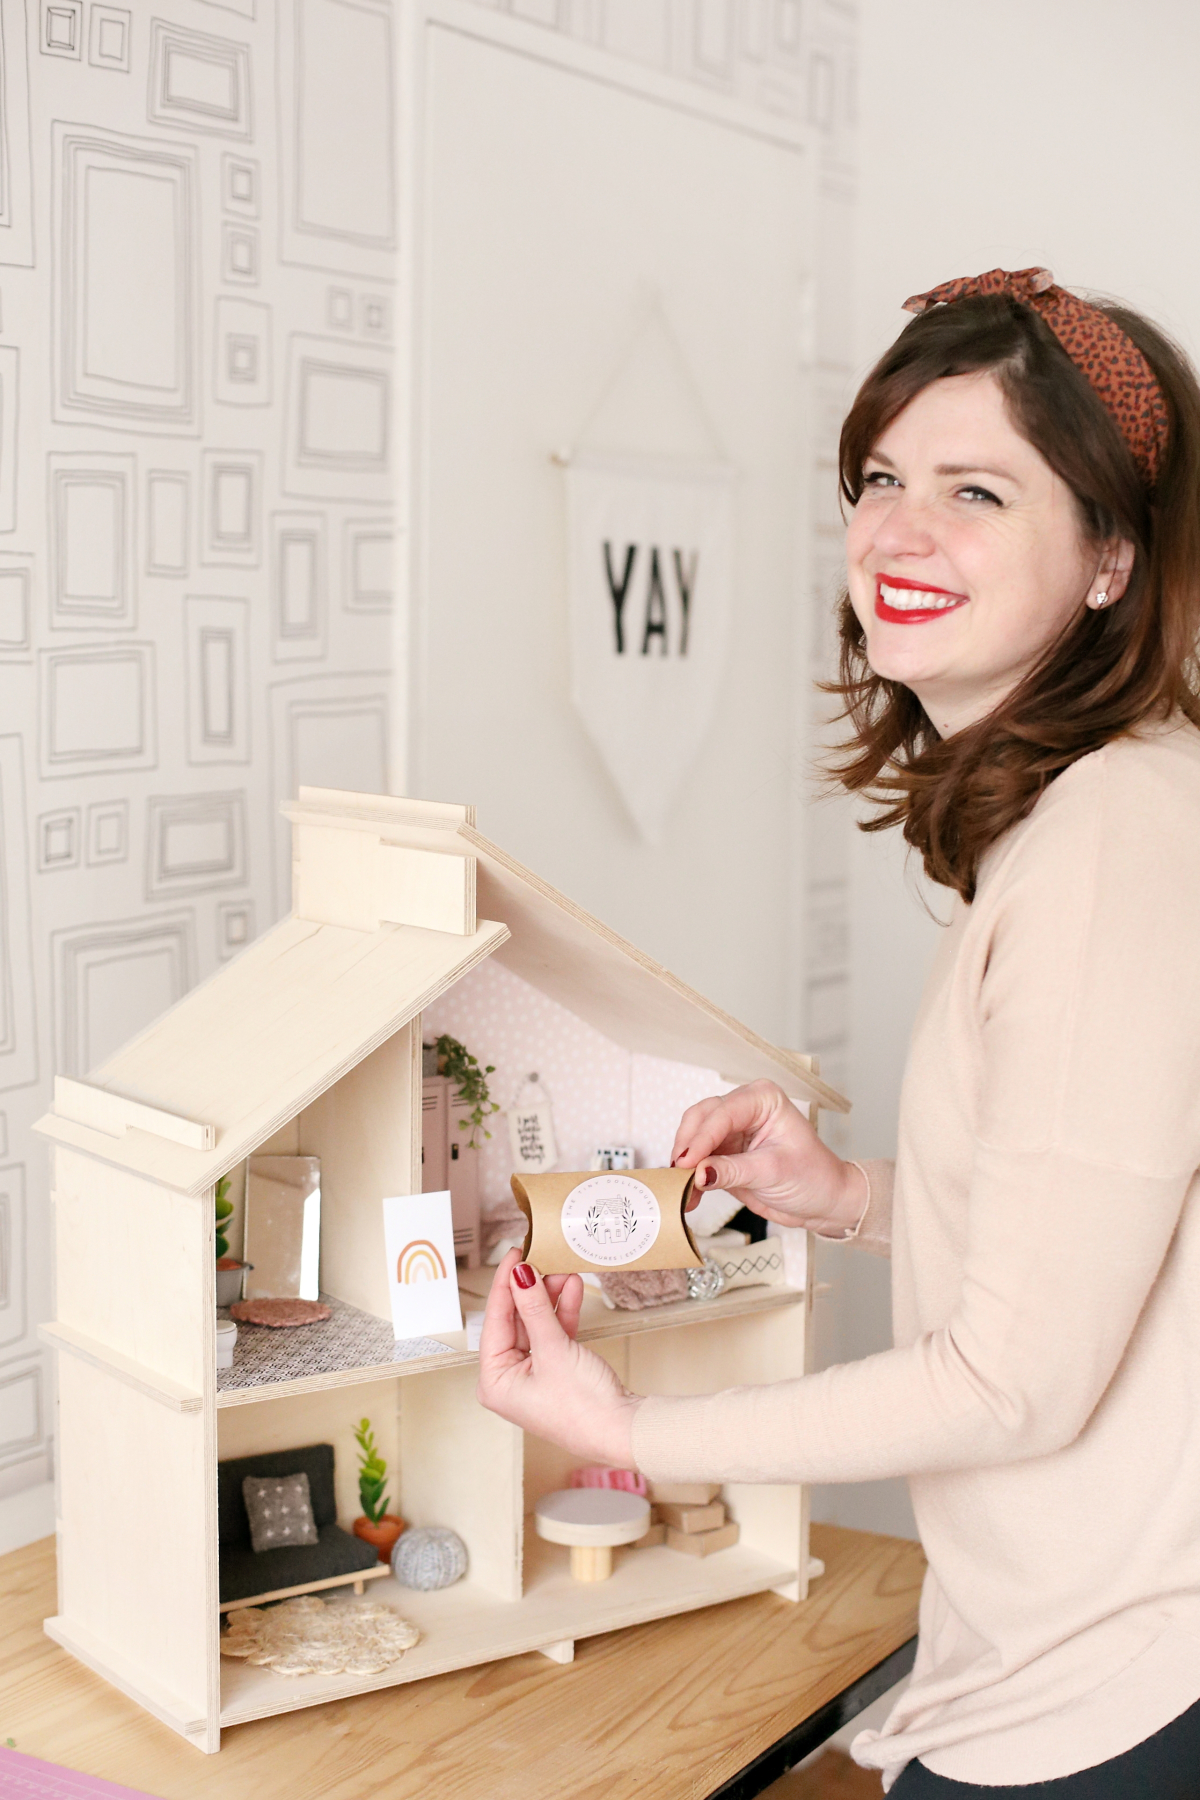 Karen Kelly Owner of The Tiny Dollhouse South Africa